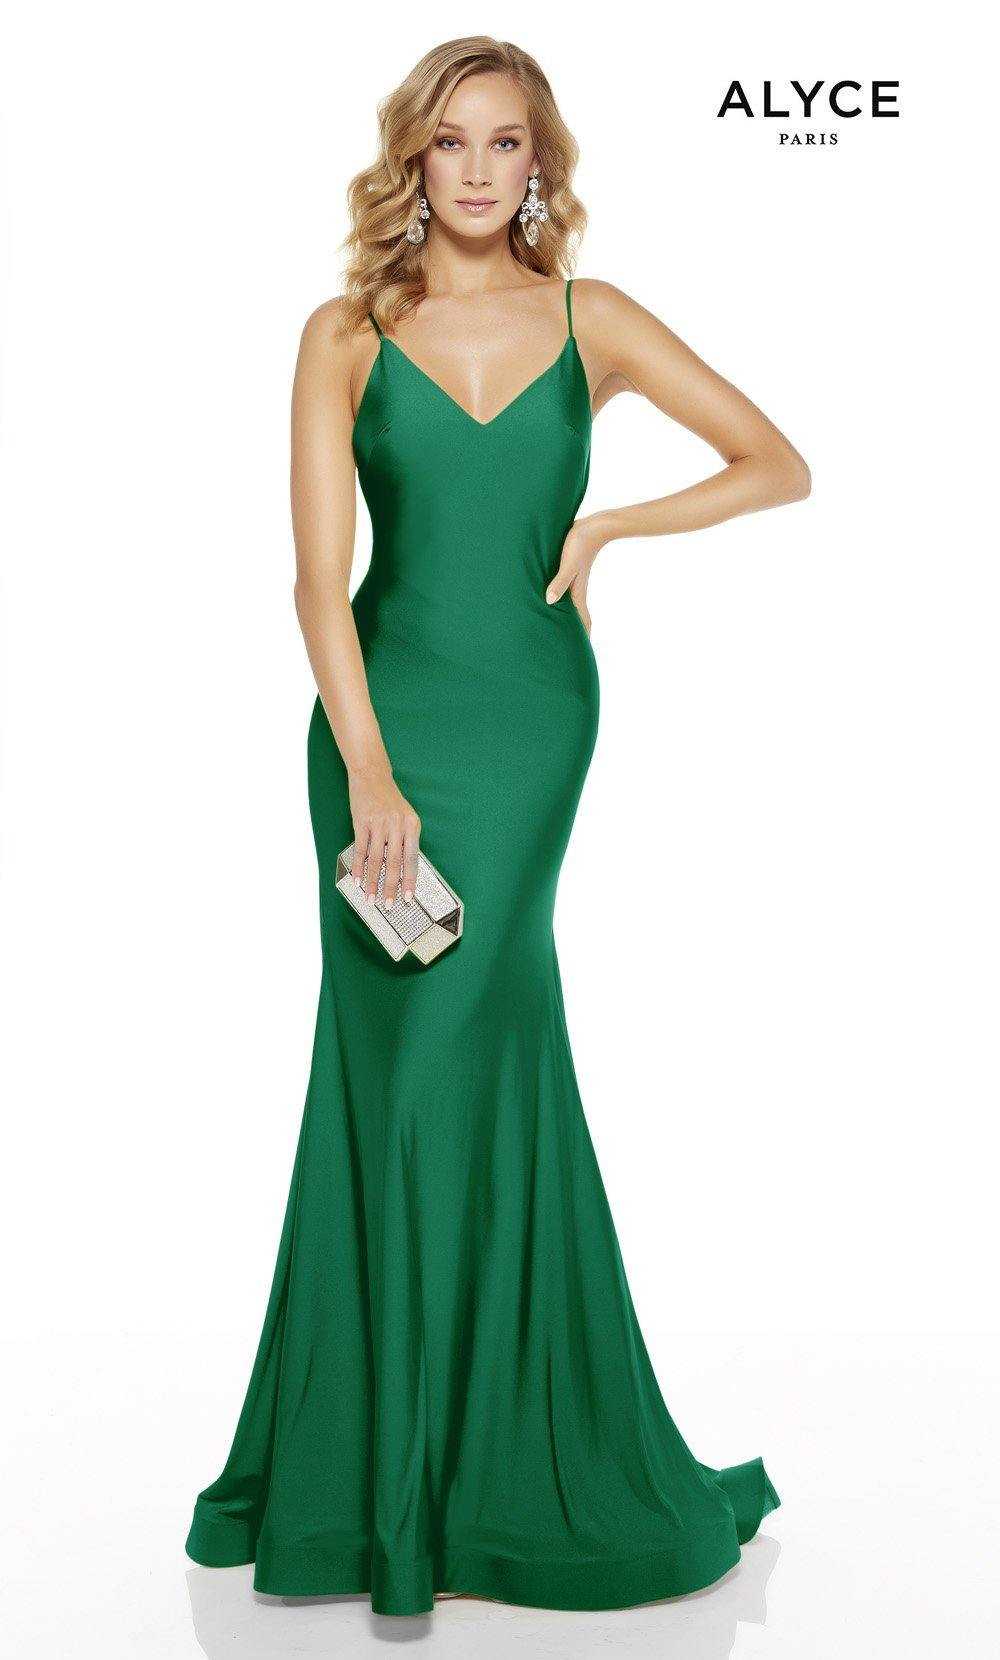 Emerald mermaid prom dress with a v-neckline